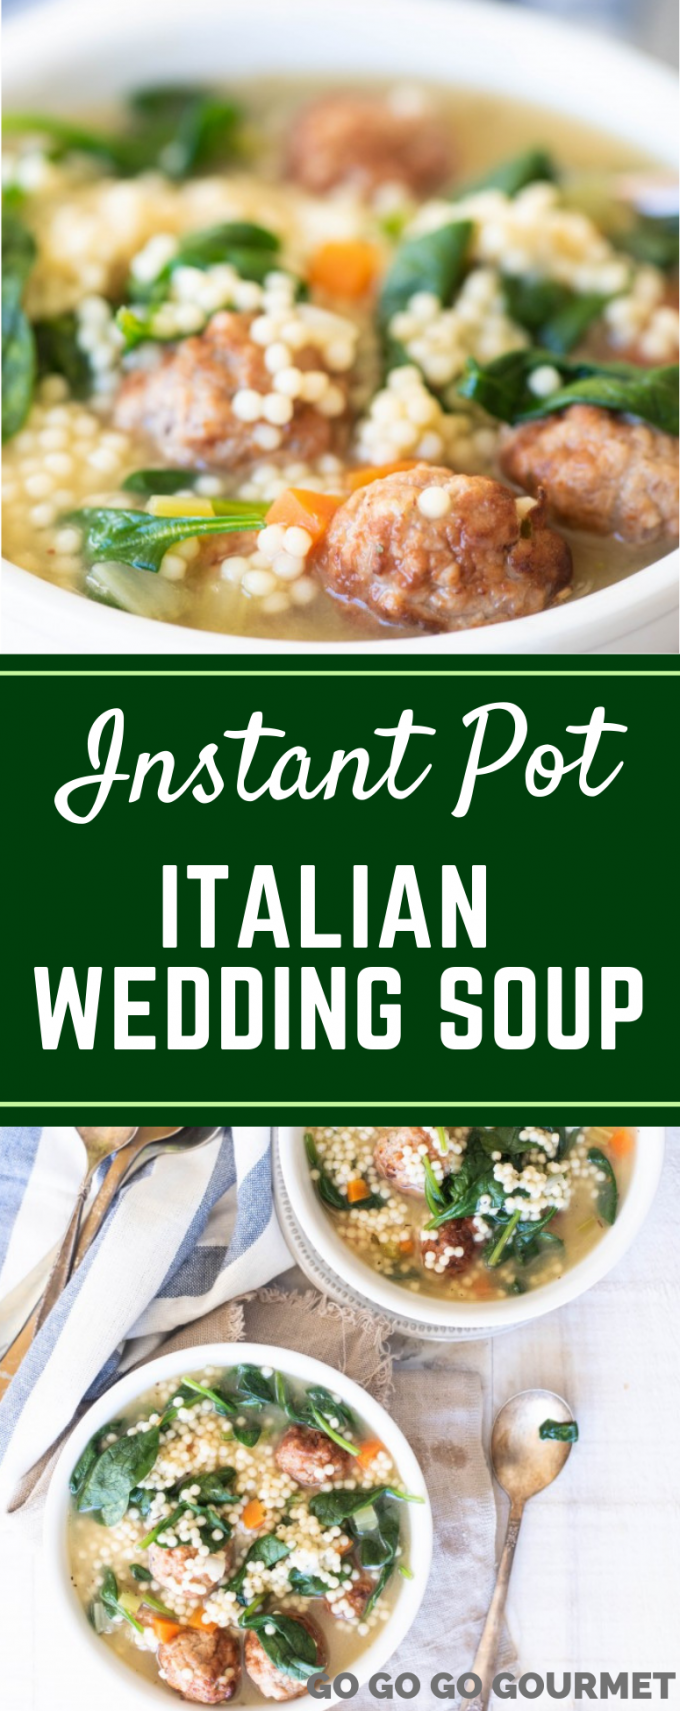 Instant Pot Italian Wedding Soup - Authentic Italian Wedding Soup